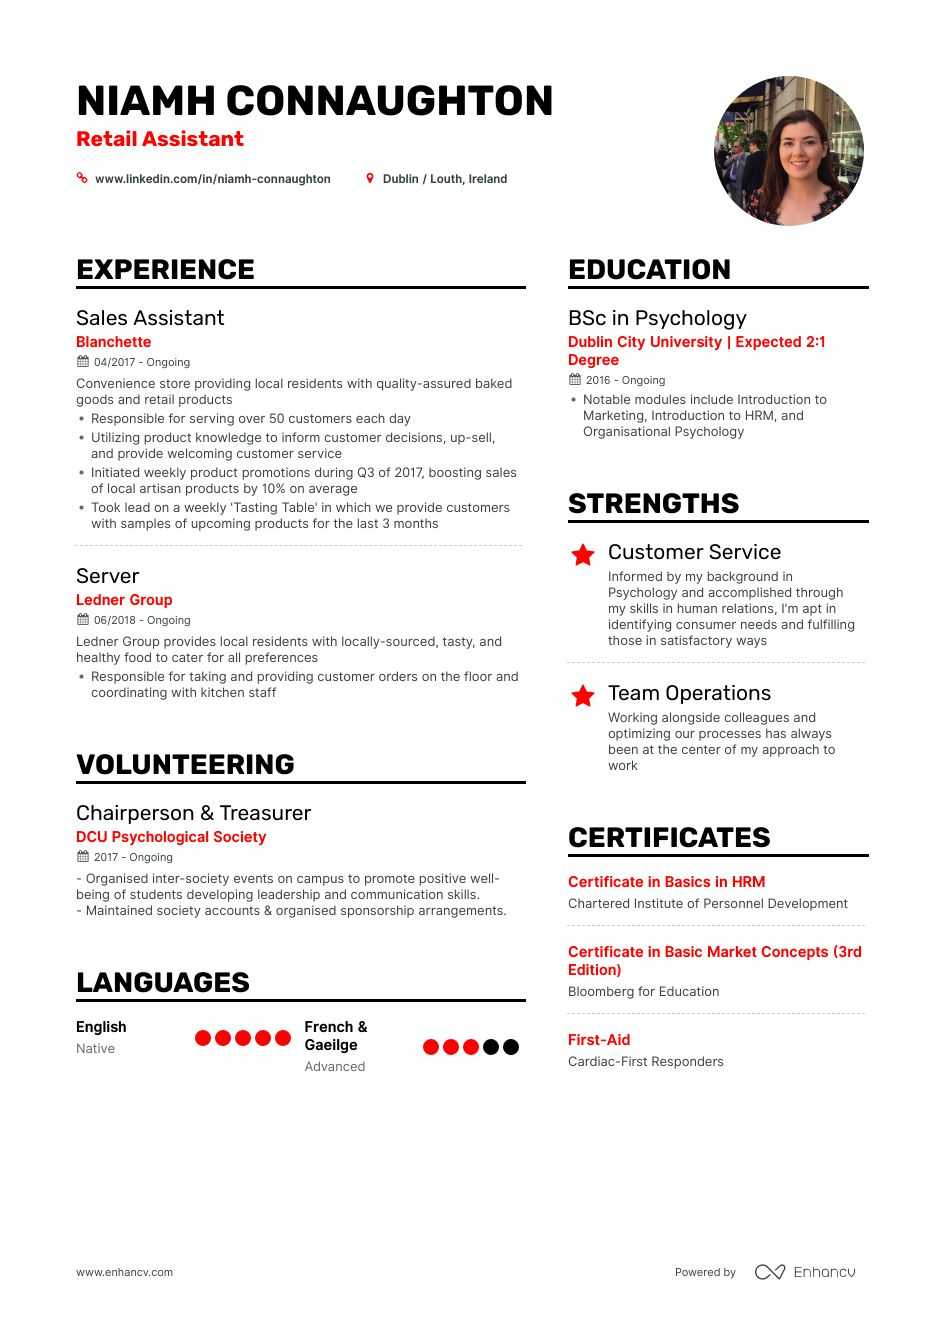 retail resume examples and skills you need to get hired eye catching professional Resume Eye Catching Resume 2020